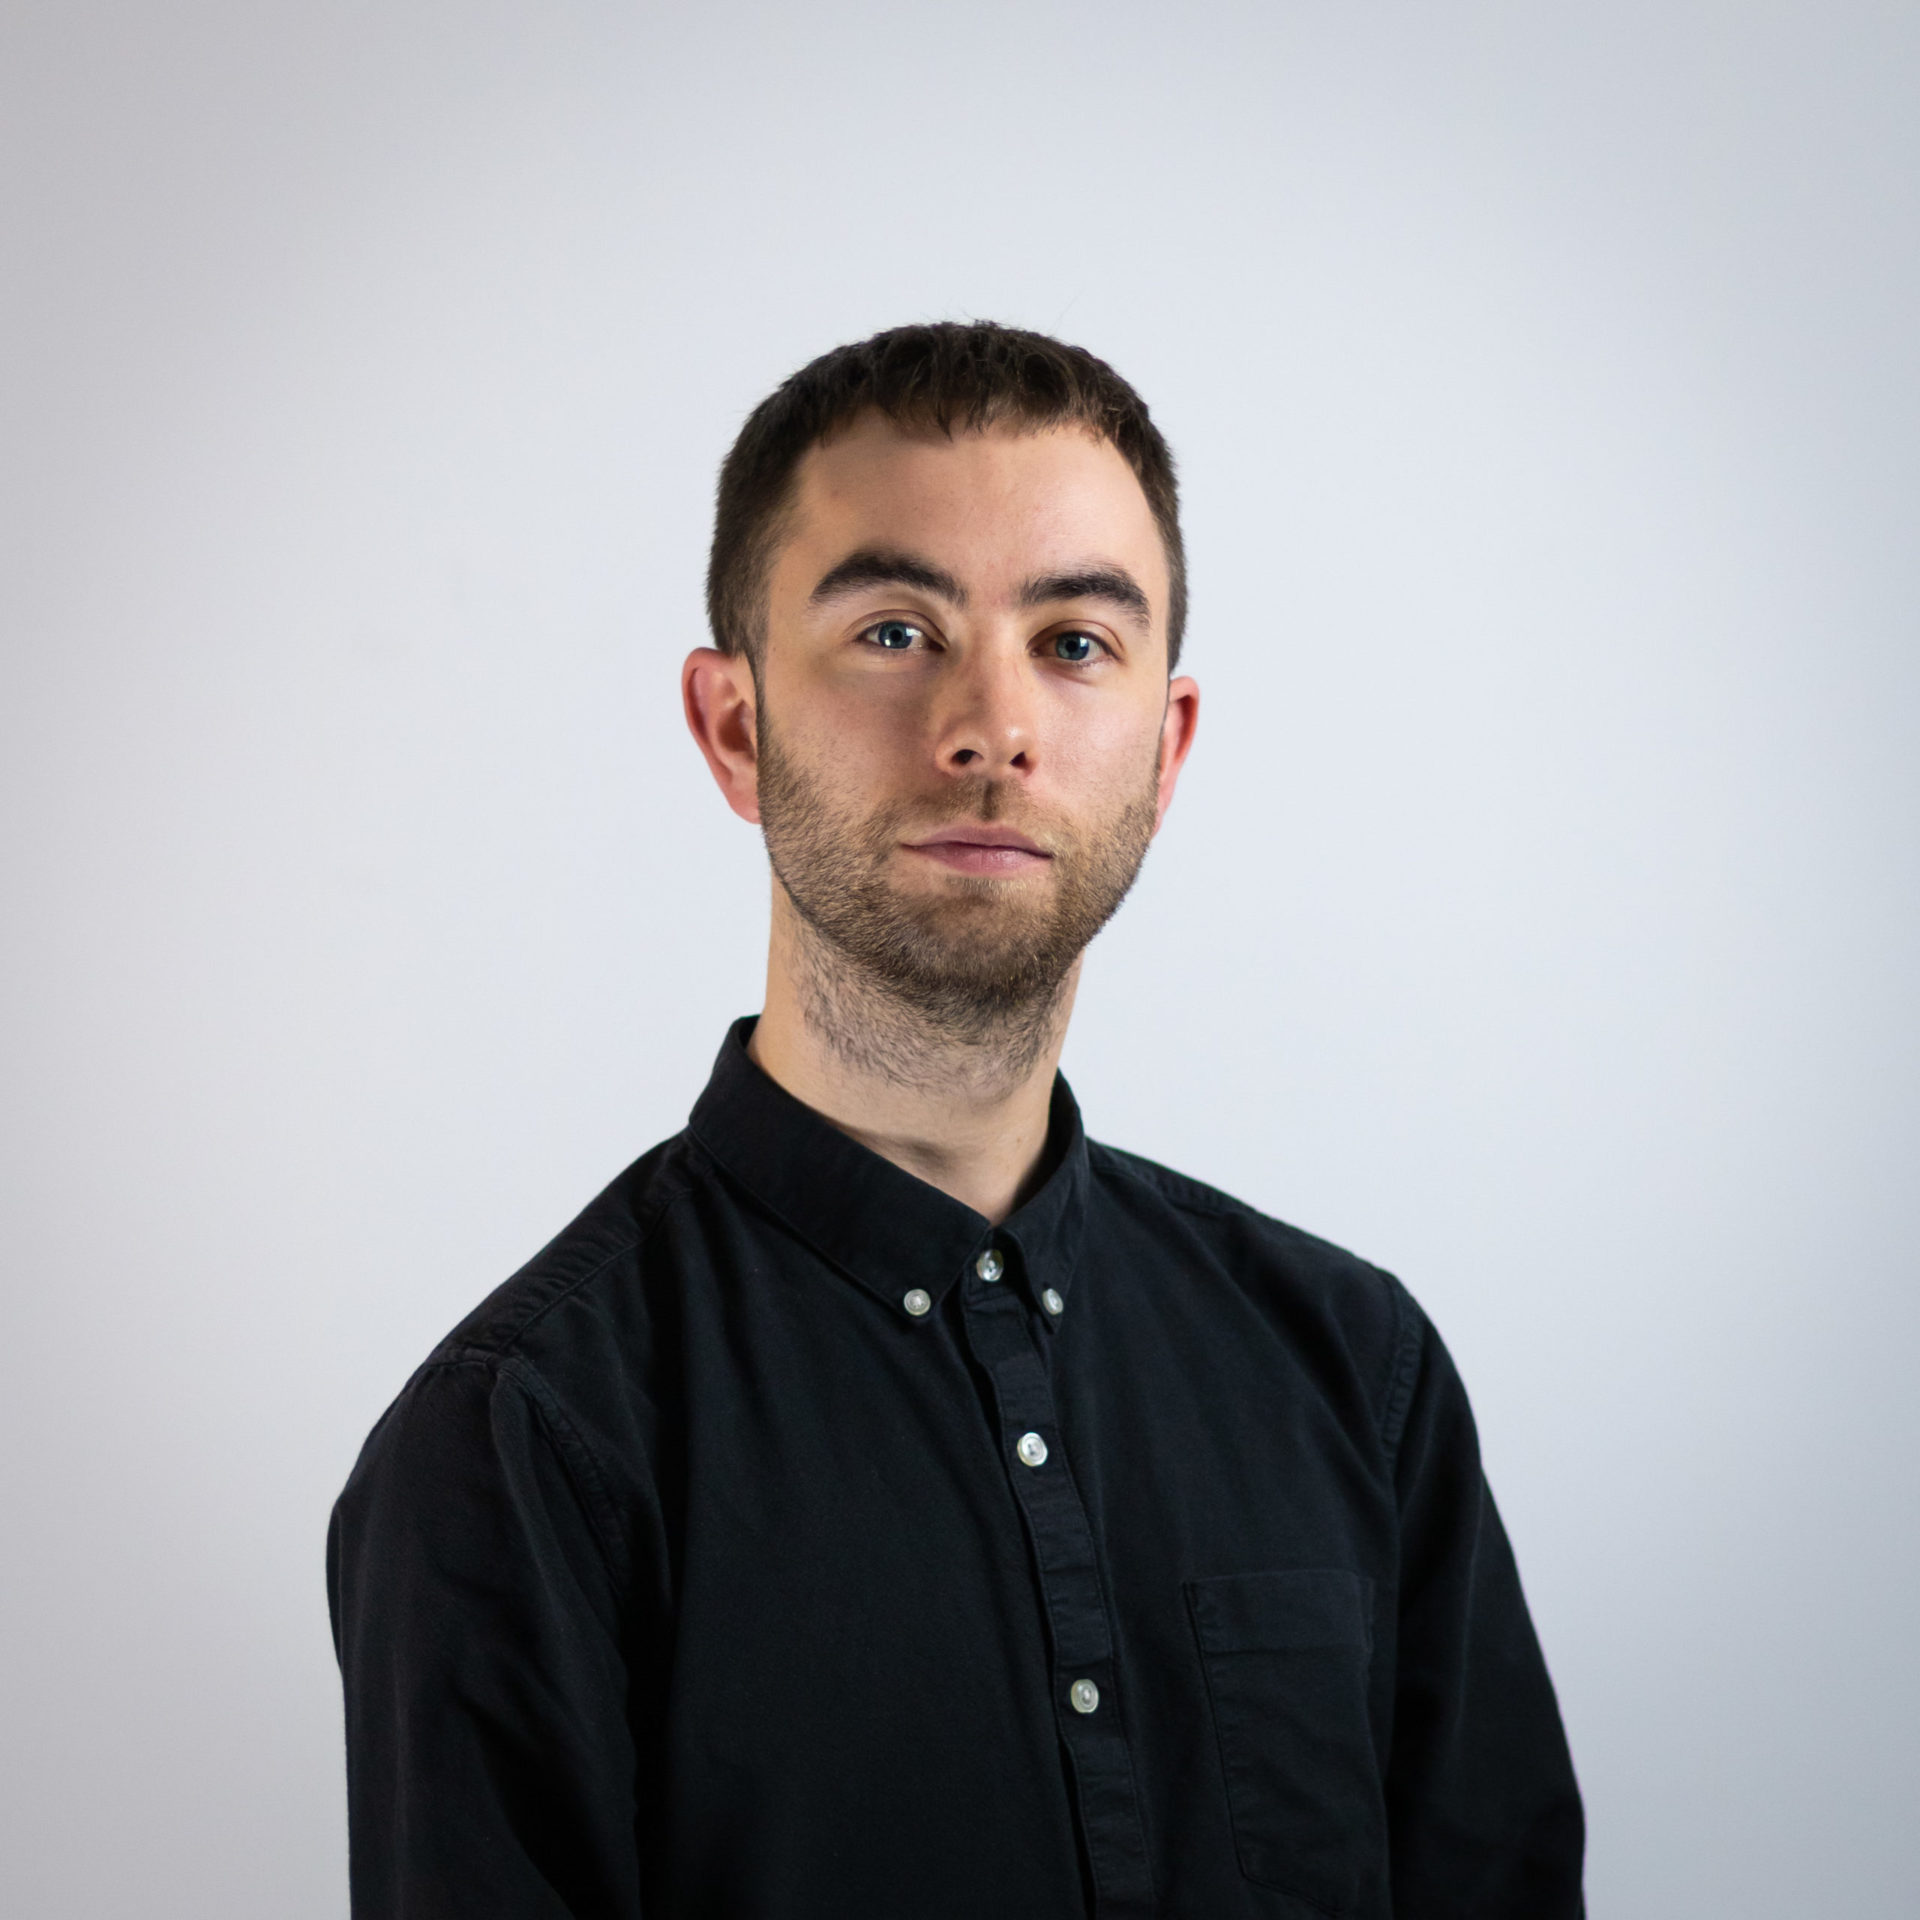 Our Digital Marketing Manager Andy's portrait